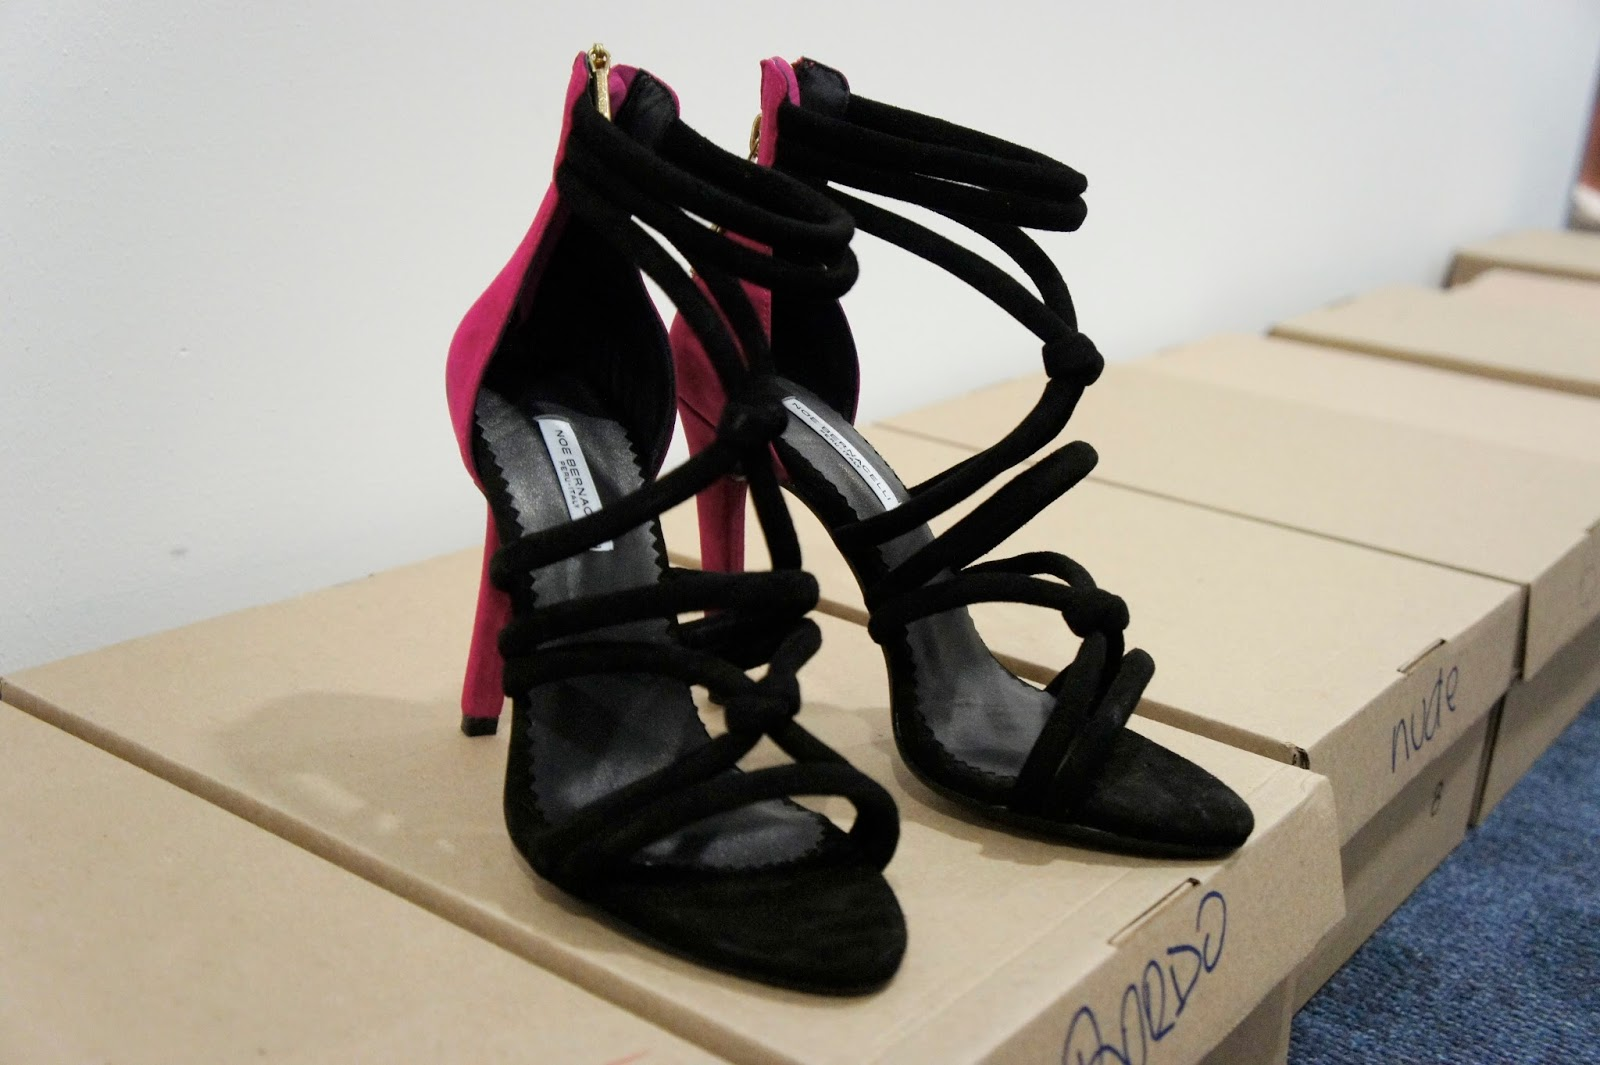 Noe Bernacelli - 727 Collection - Backstage - zapatos